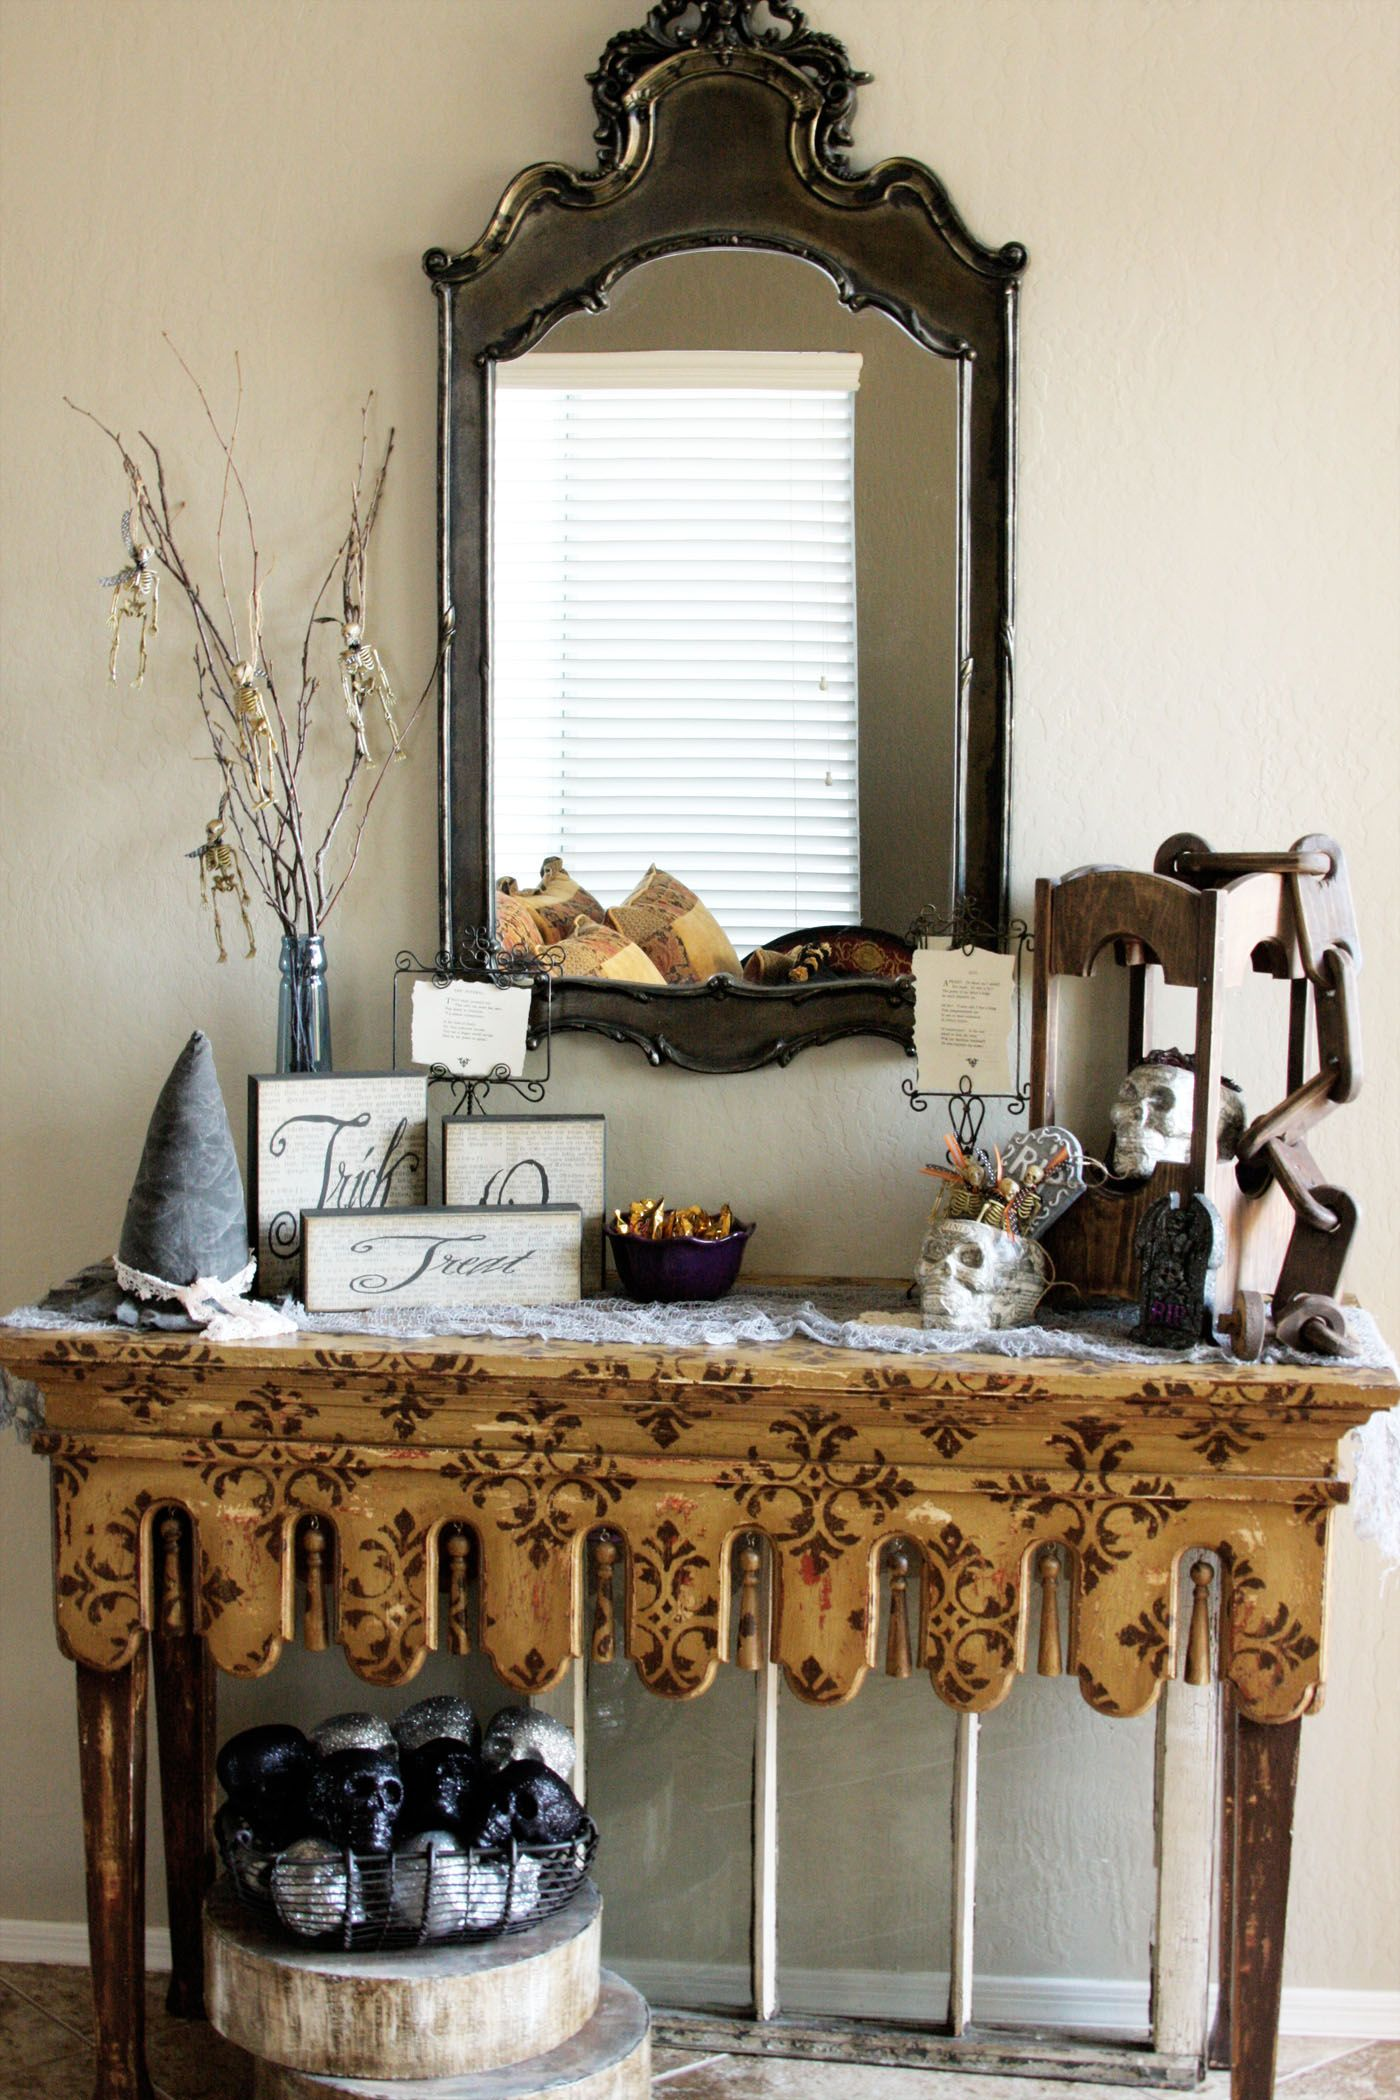 unique console table decor idea with wooden letters feat spooky hanging skeletons also black wall mirror inspiring console table decor ideas transforming